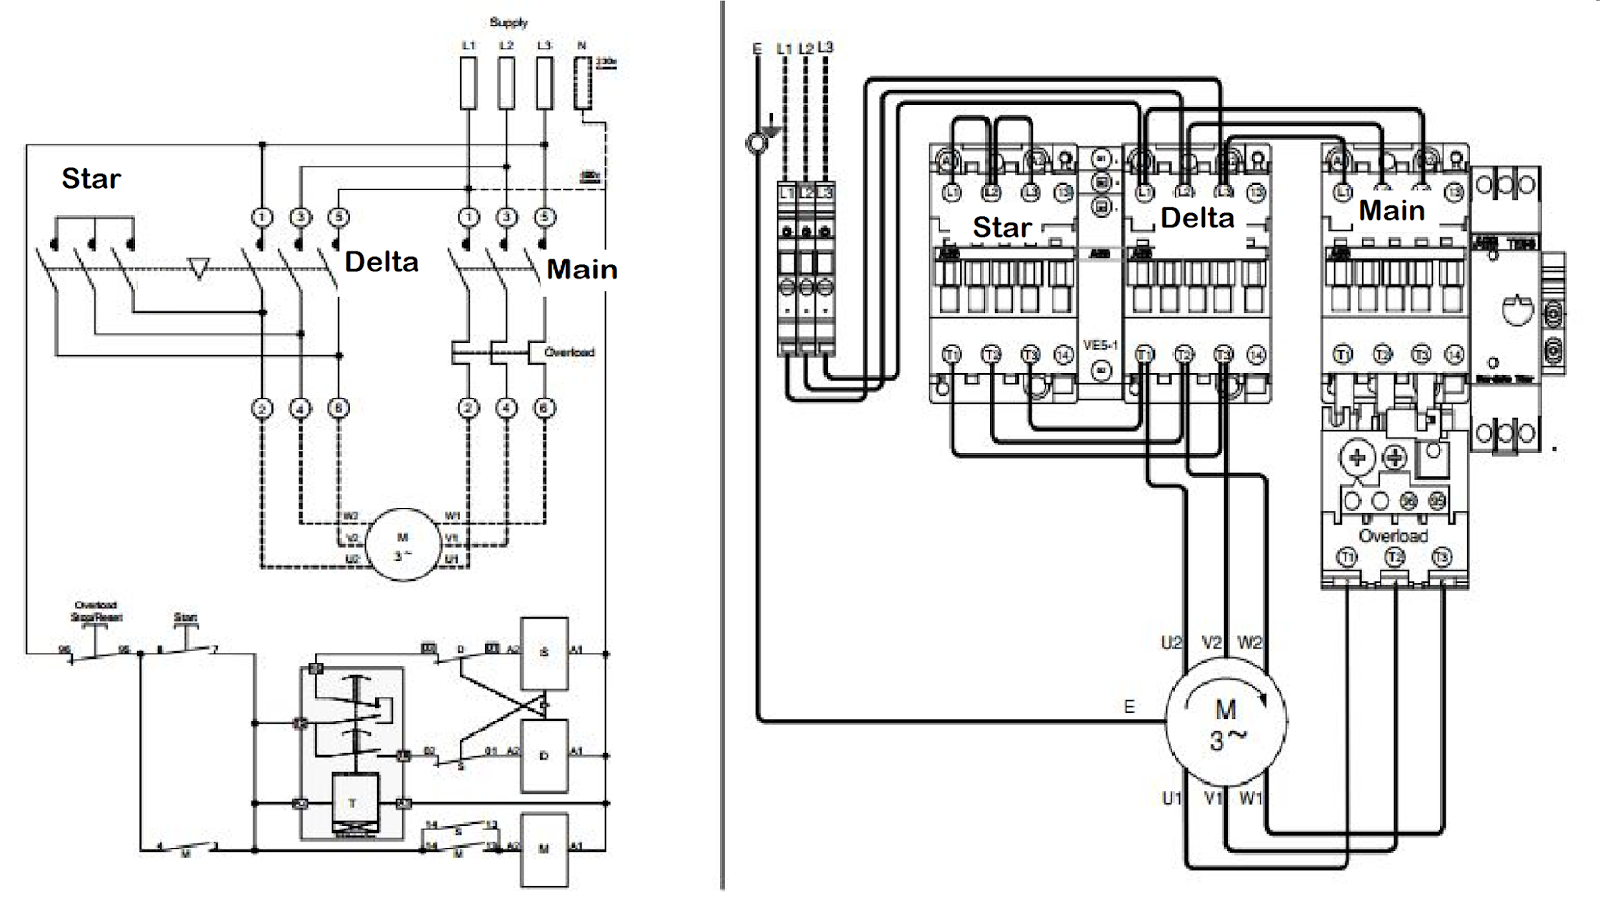 Wiring Diagram Start Stop Motor Control together with Marine Battery Selector Switch Wiring Diagram also Square D Lighting Contactor Wiring Diagram 8903 additionally Single Phase Motor Capacitor Wiring Diagram moreover 4 Way Switch Wiring Diagram With Dimmer. on forward reverse motor starter wiring diagram